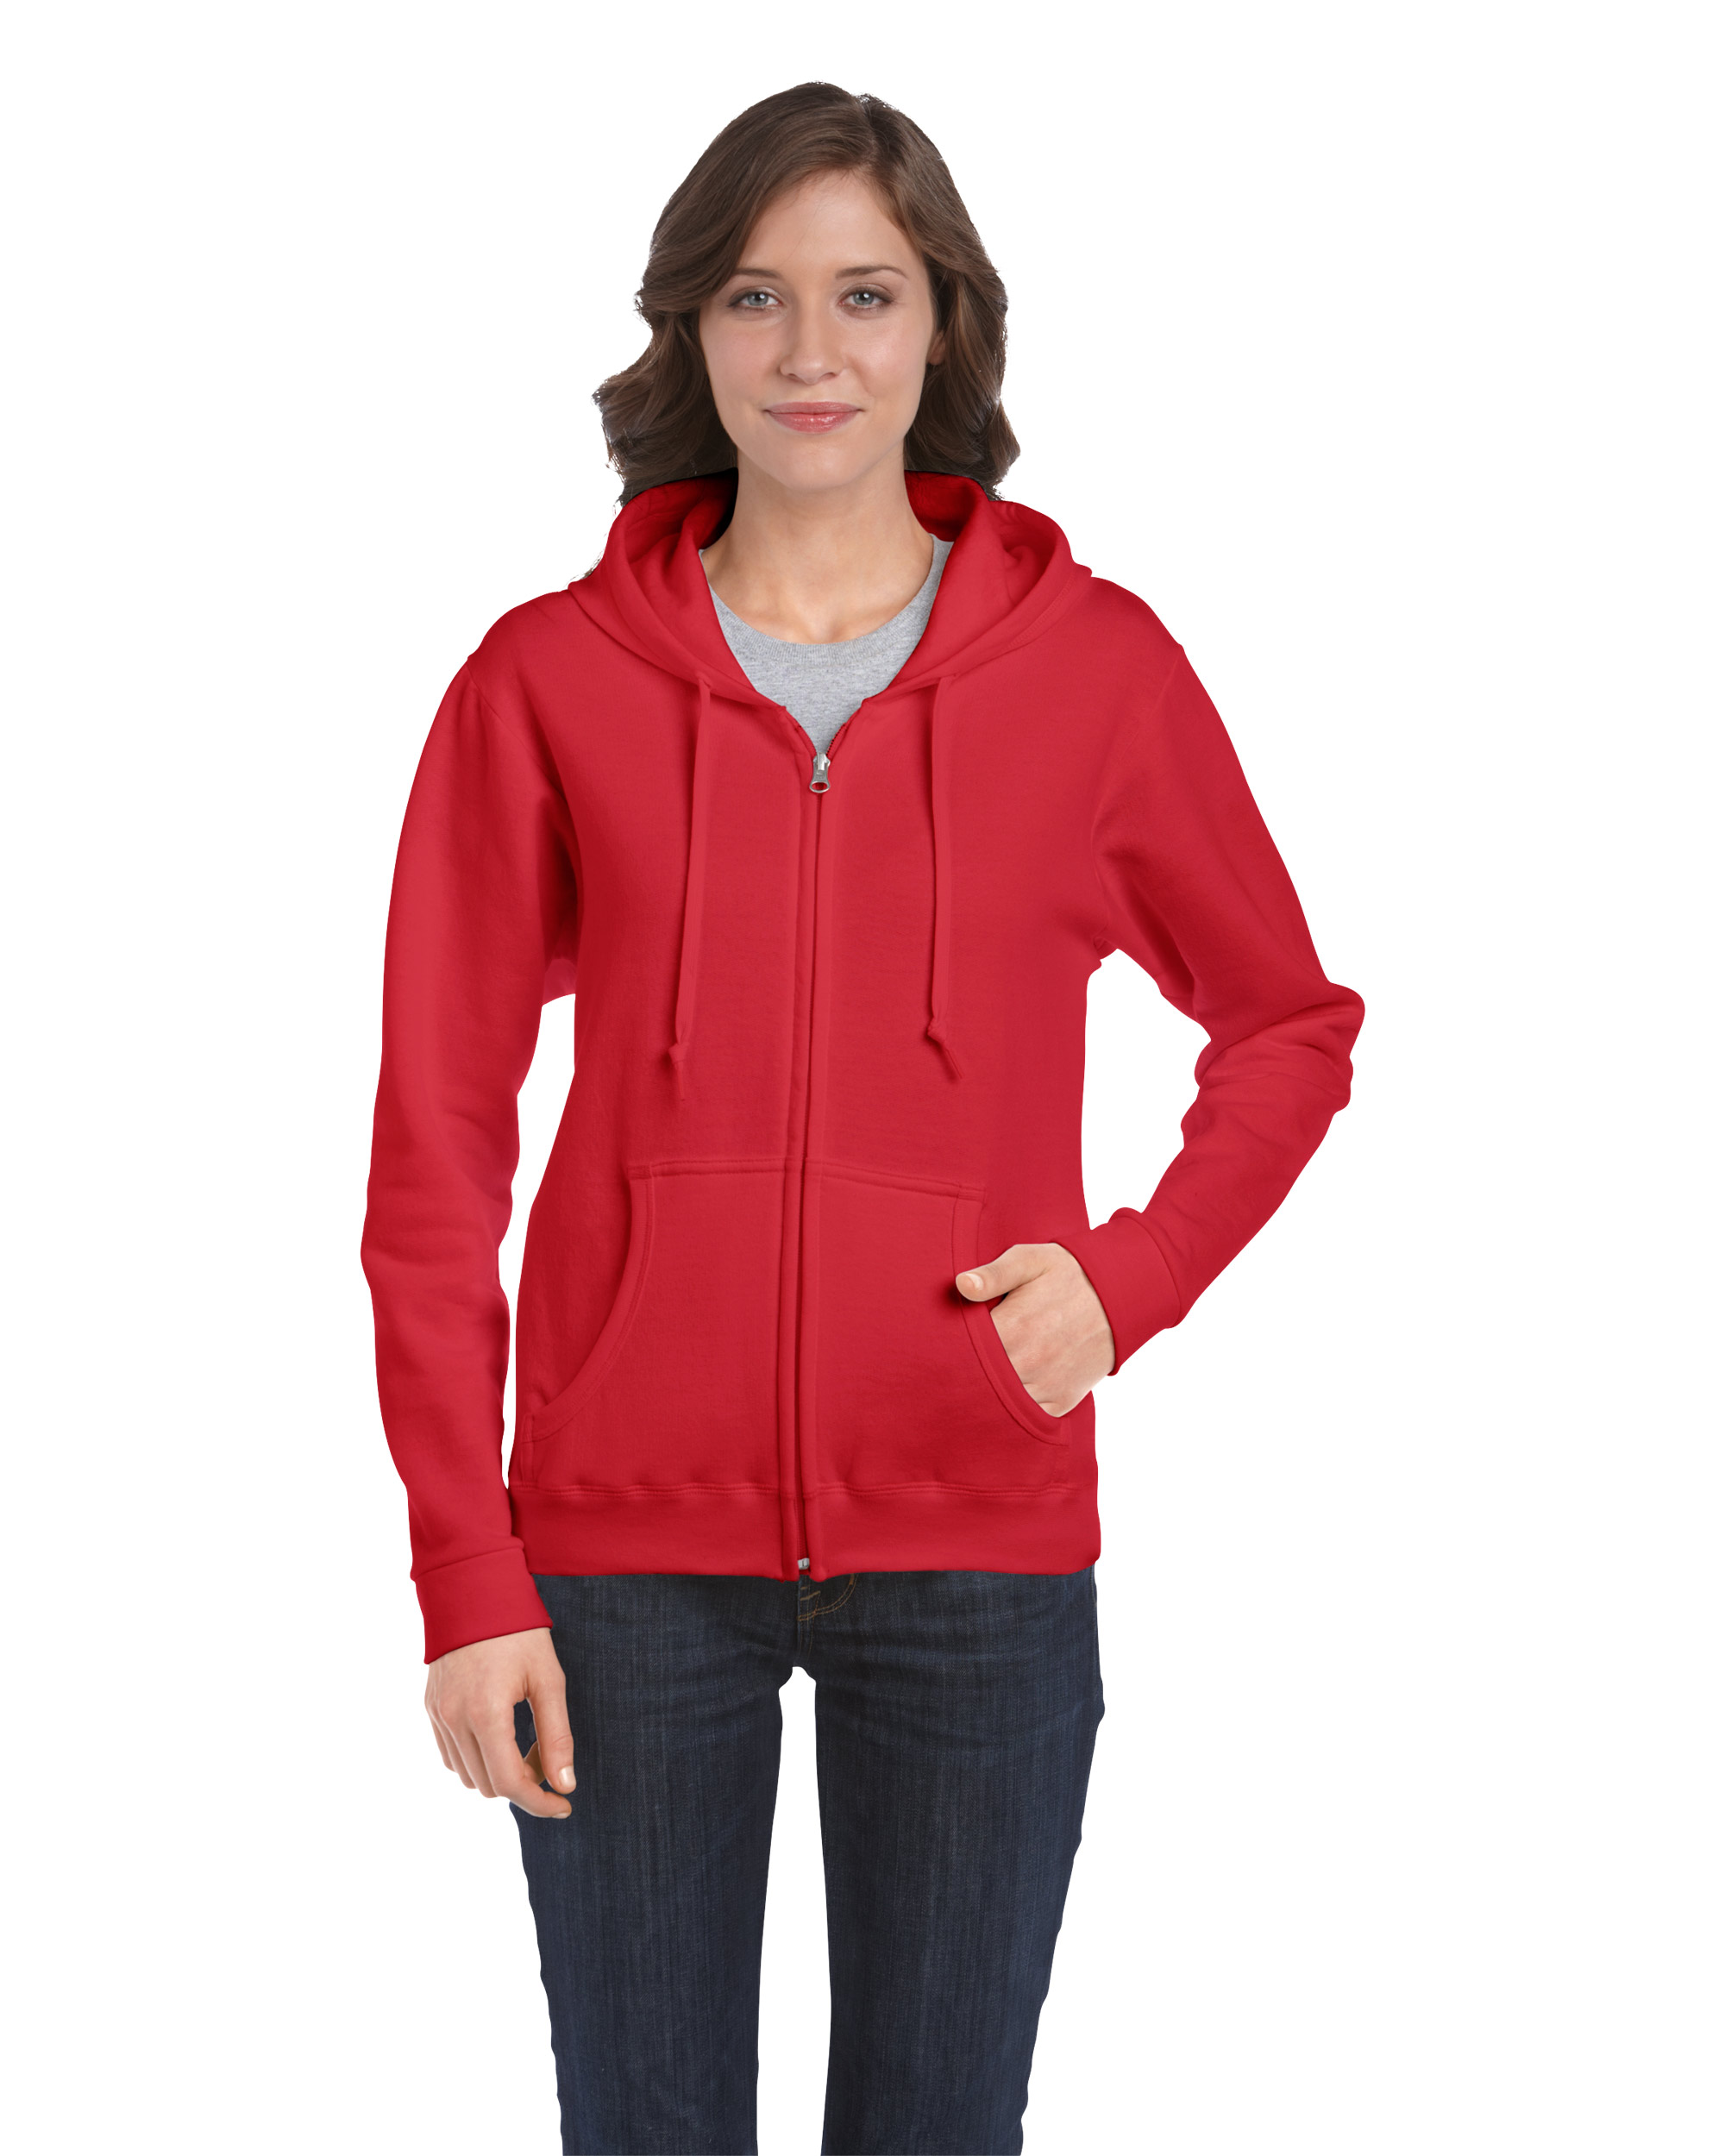 Gildan Heavy Blend Ladies Hooded Sweatshirt eaf4ae40e2